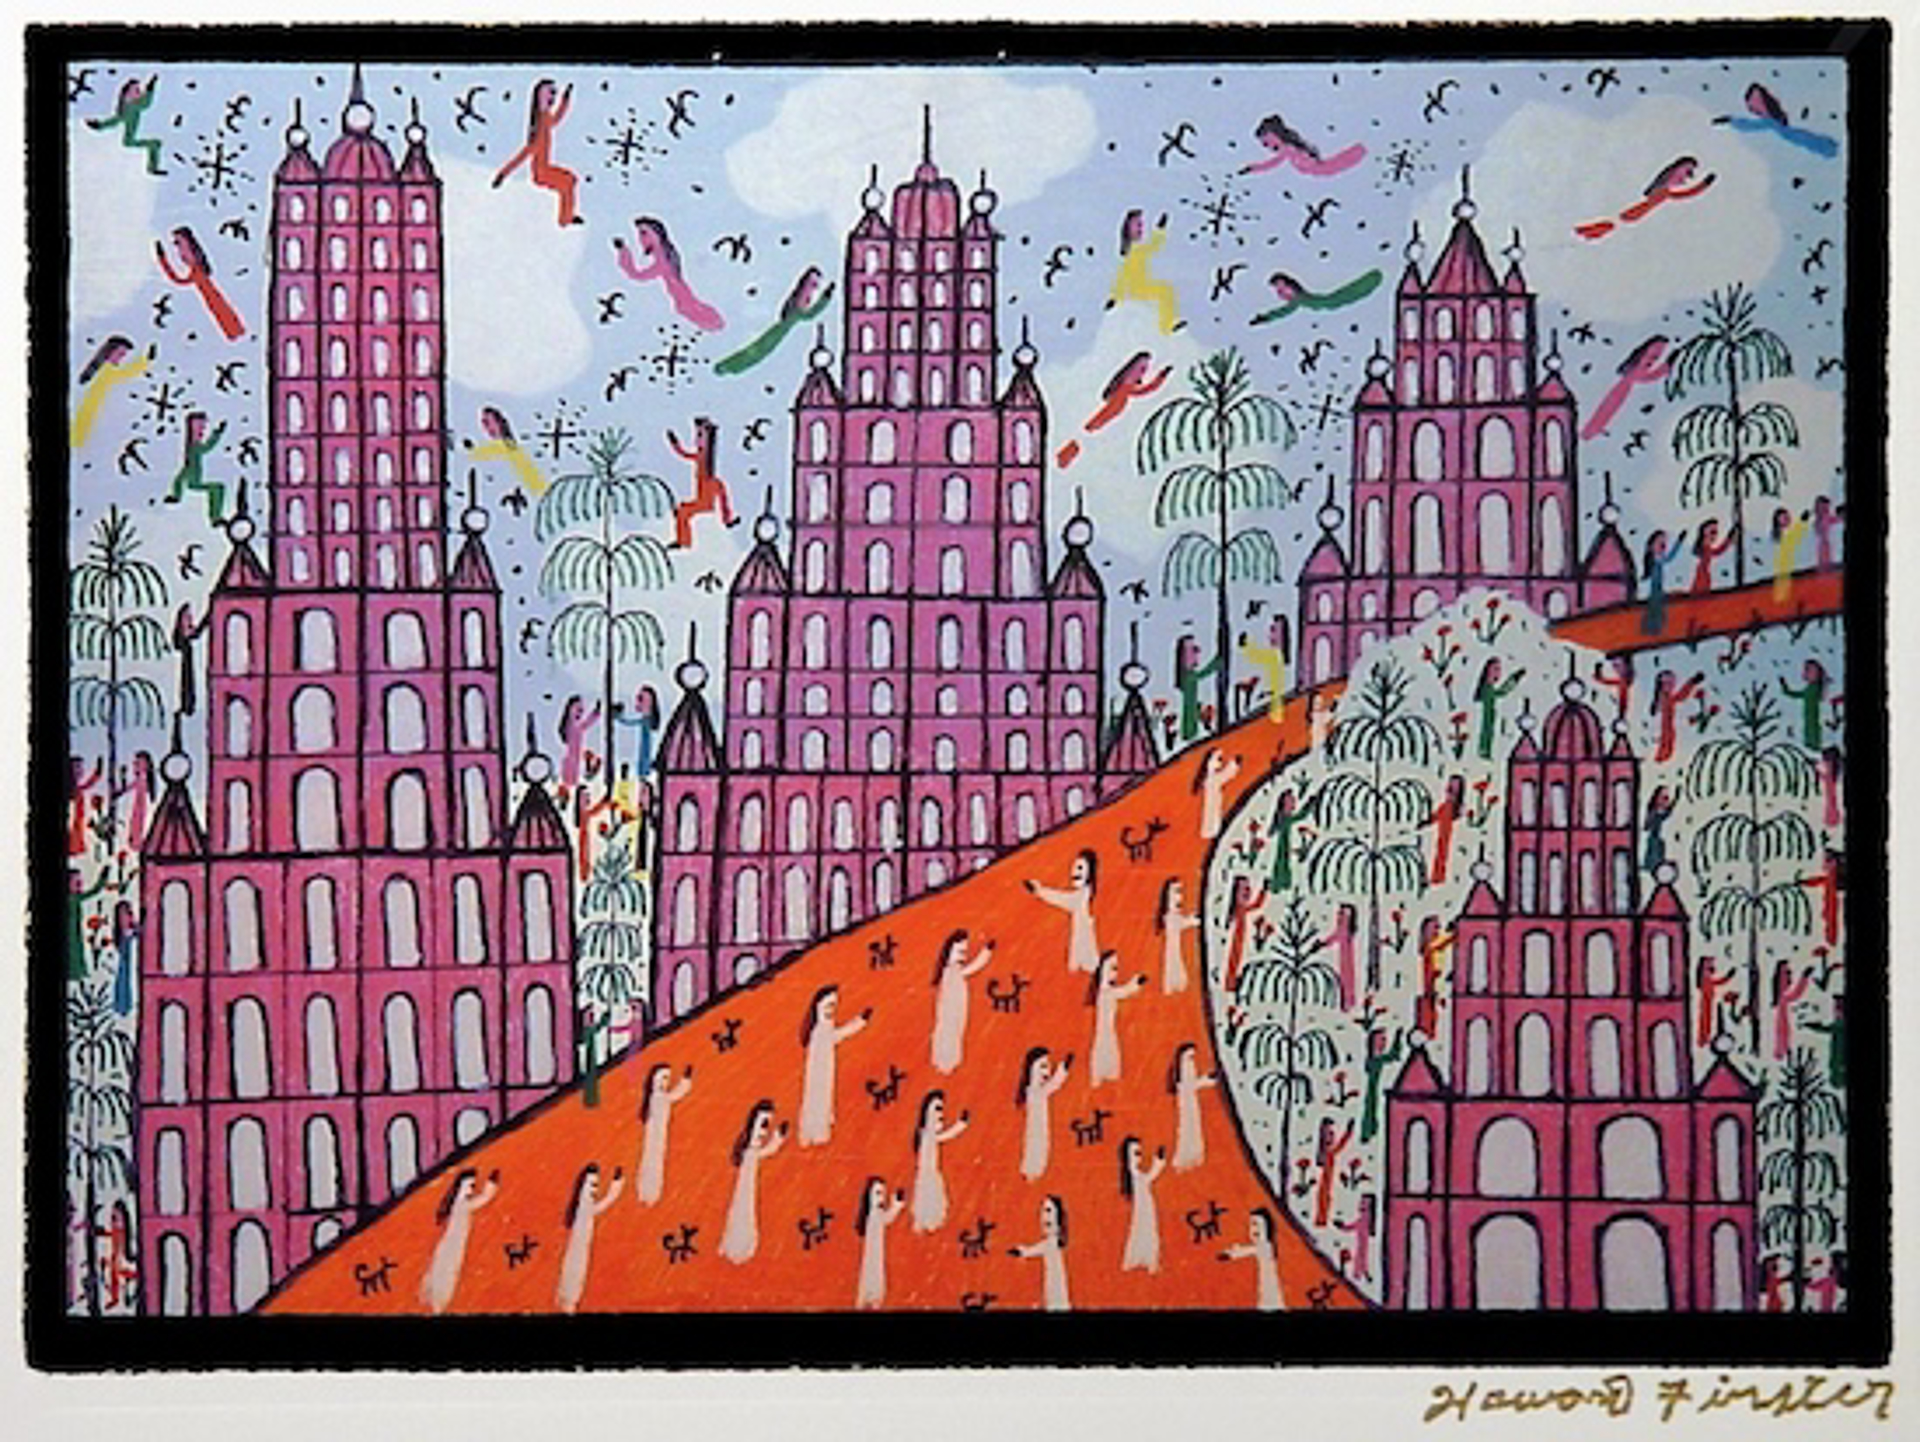 Sentric Norial by Howard Finster